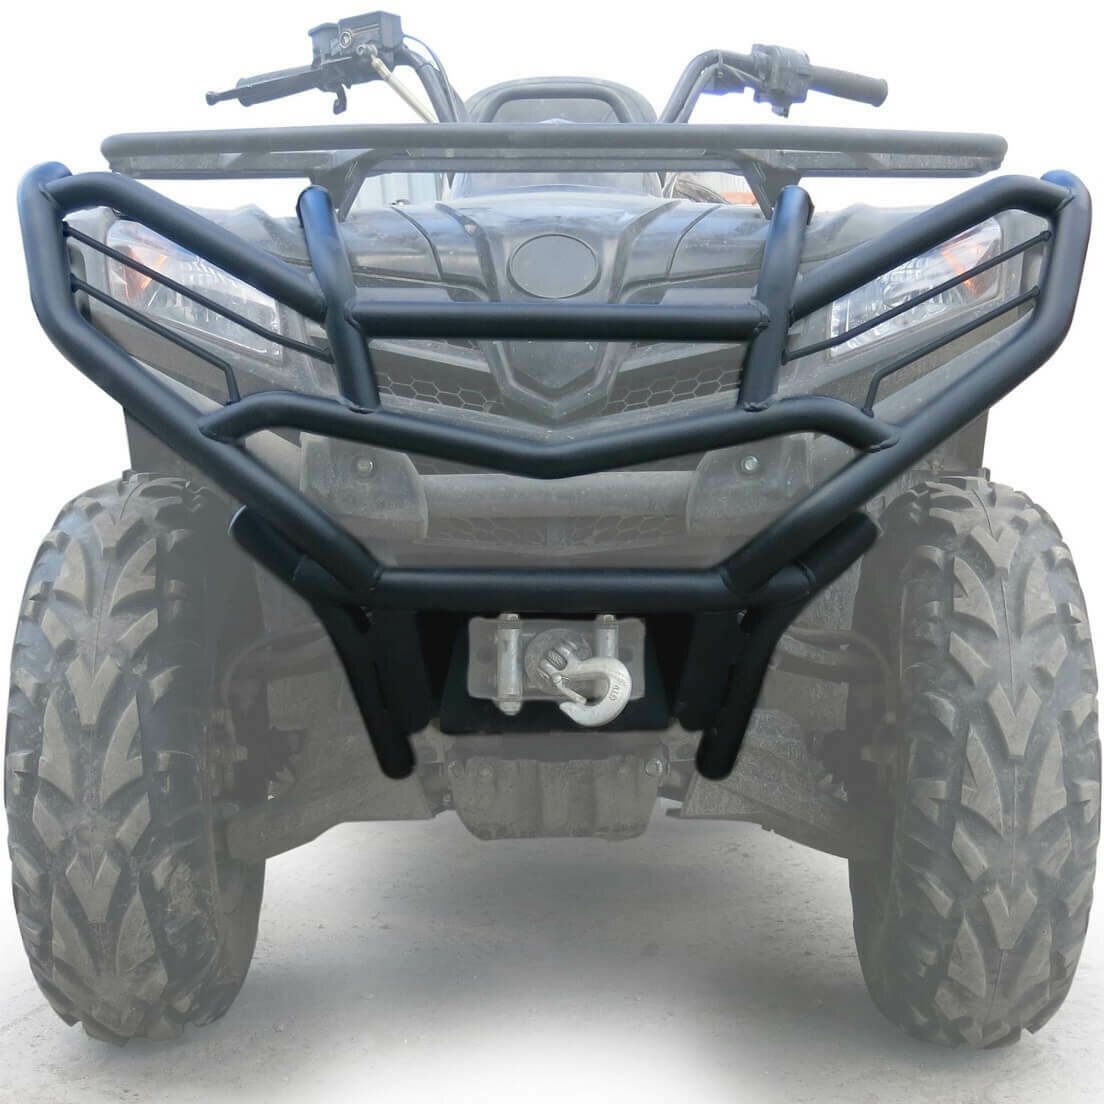 Rival Full Front Brush Guard Bumper - CFMOTO CFORCE 400 | 400 HO | 500 S | 500 HO (2444-6874-1)